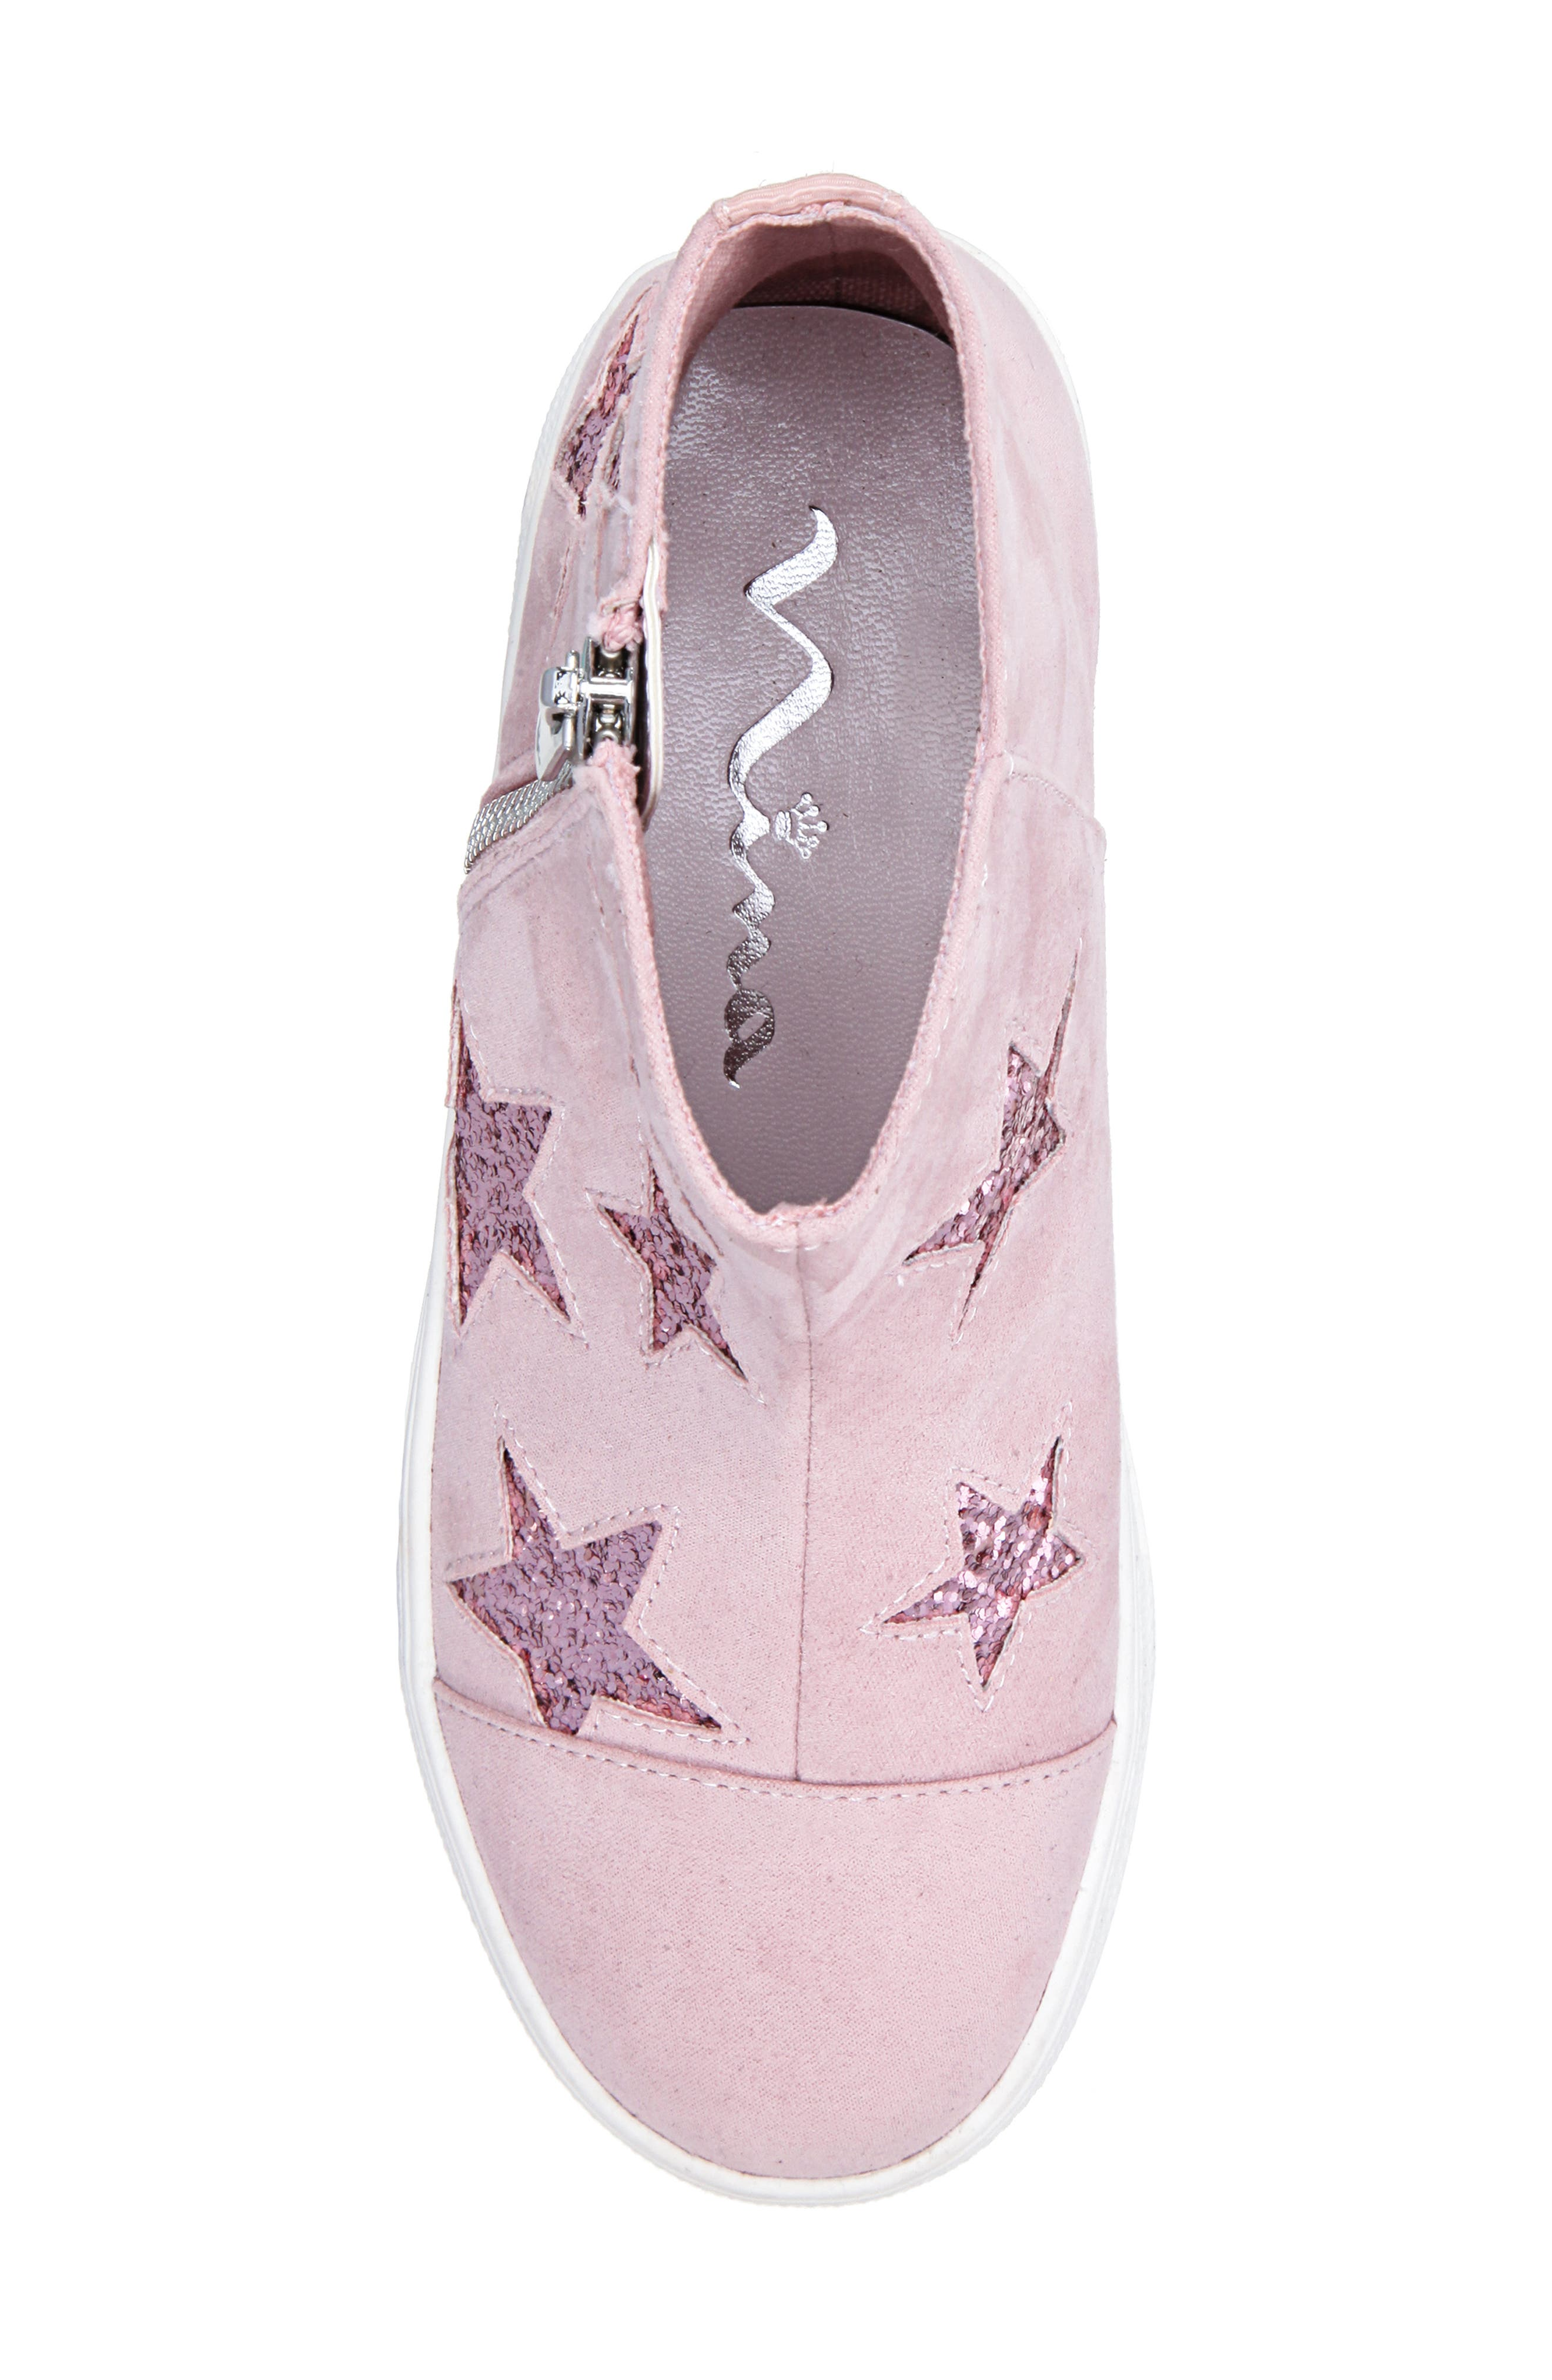 Jacqui Glitter High Top Sneaker,                             Alternate thumbnail 5, color,                             BLUSH MICRO SUEDE